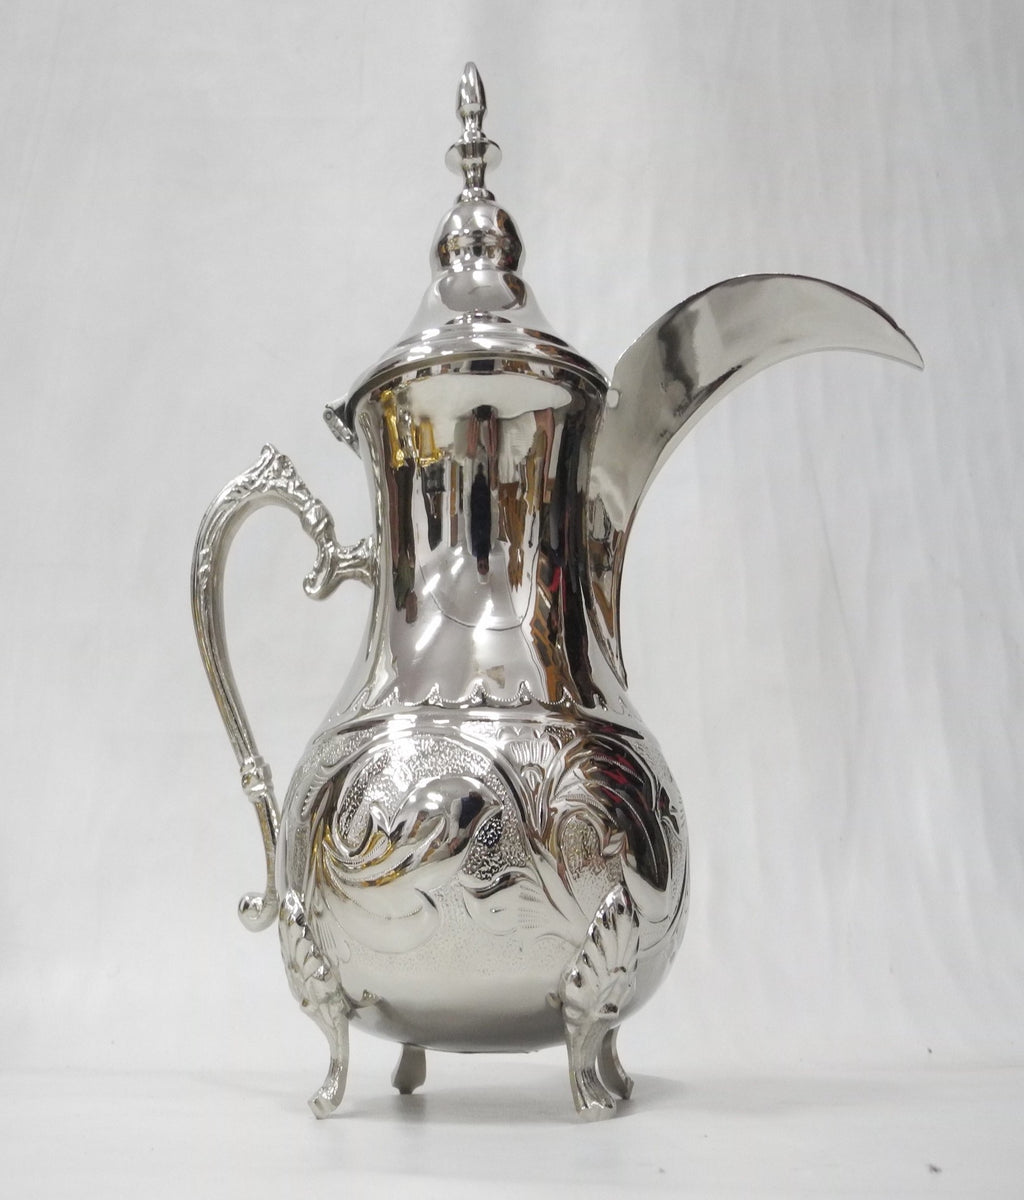 Arabic Tea Pot - E' Panta Market